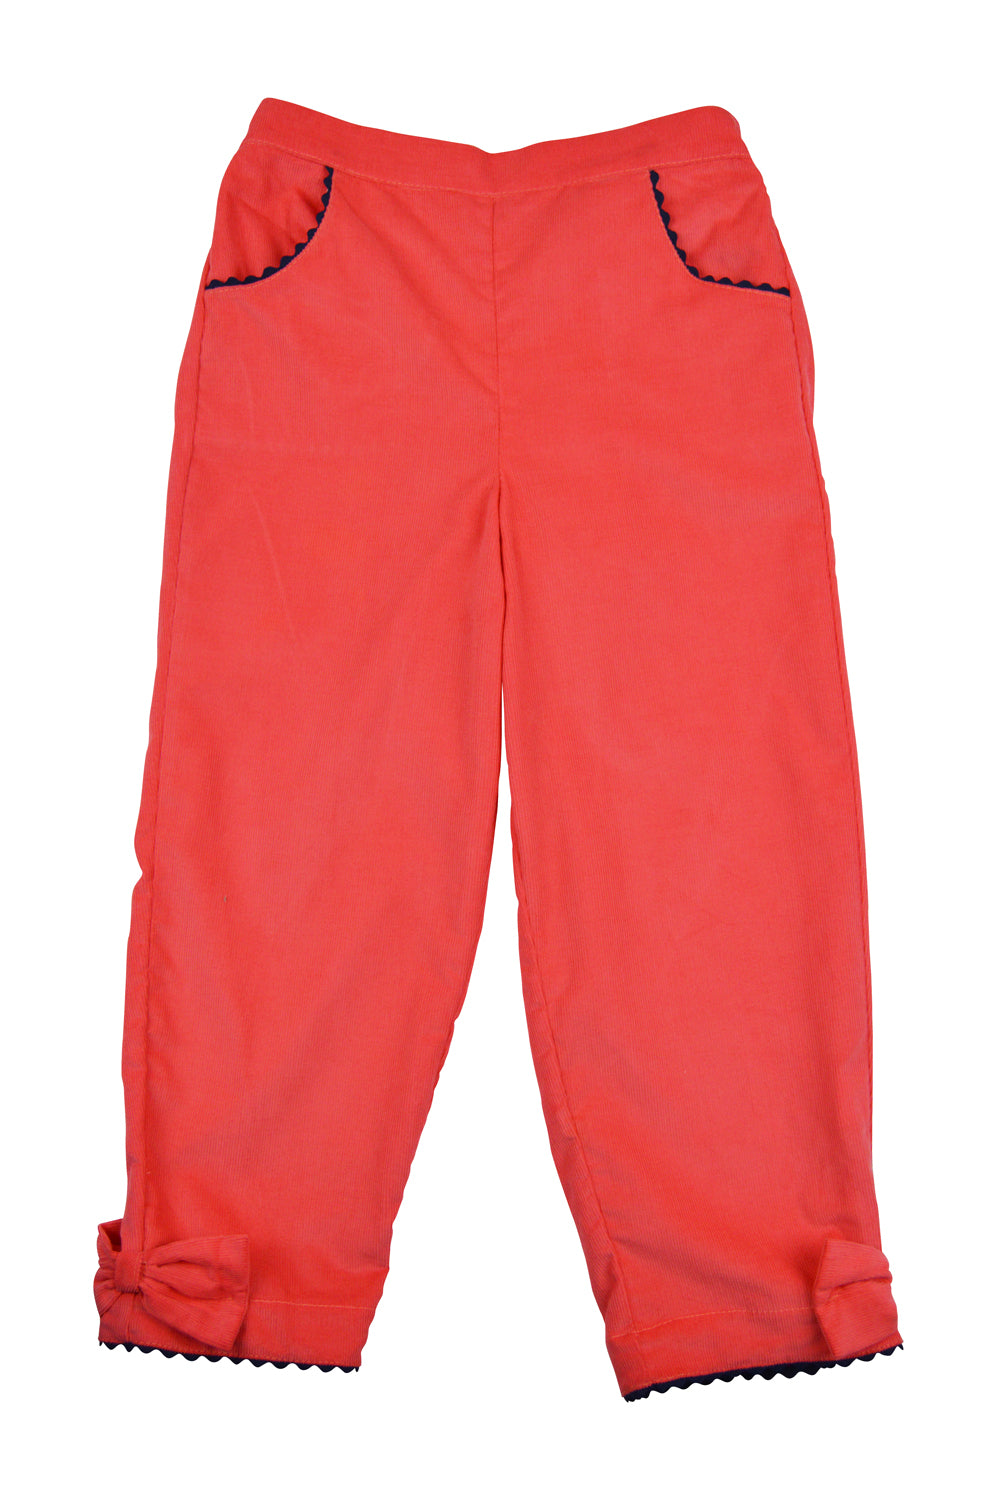 Katherine Cord Girls Pants - Little Threads Inc. Children's Clothing